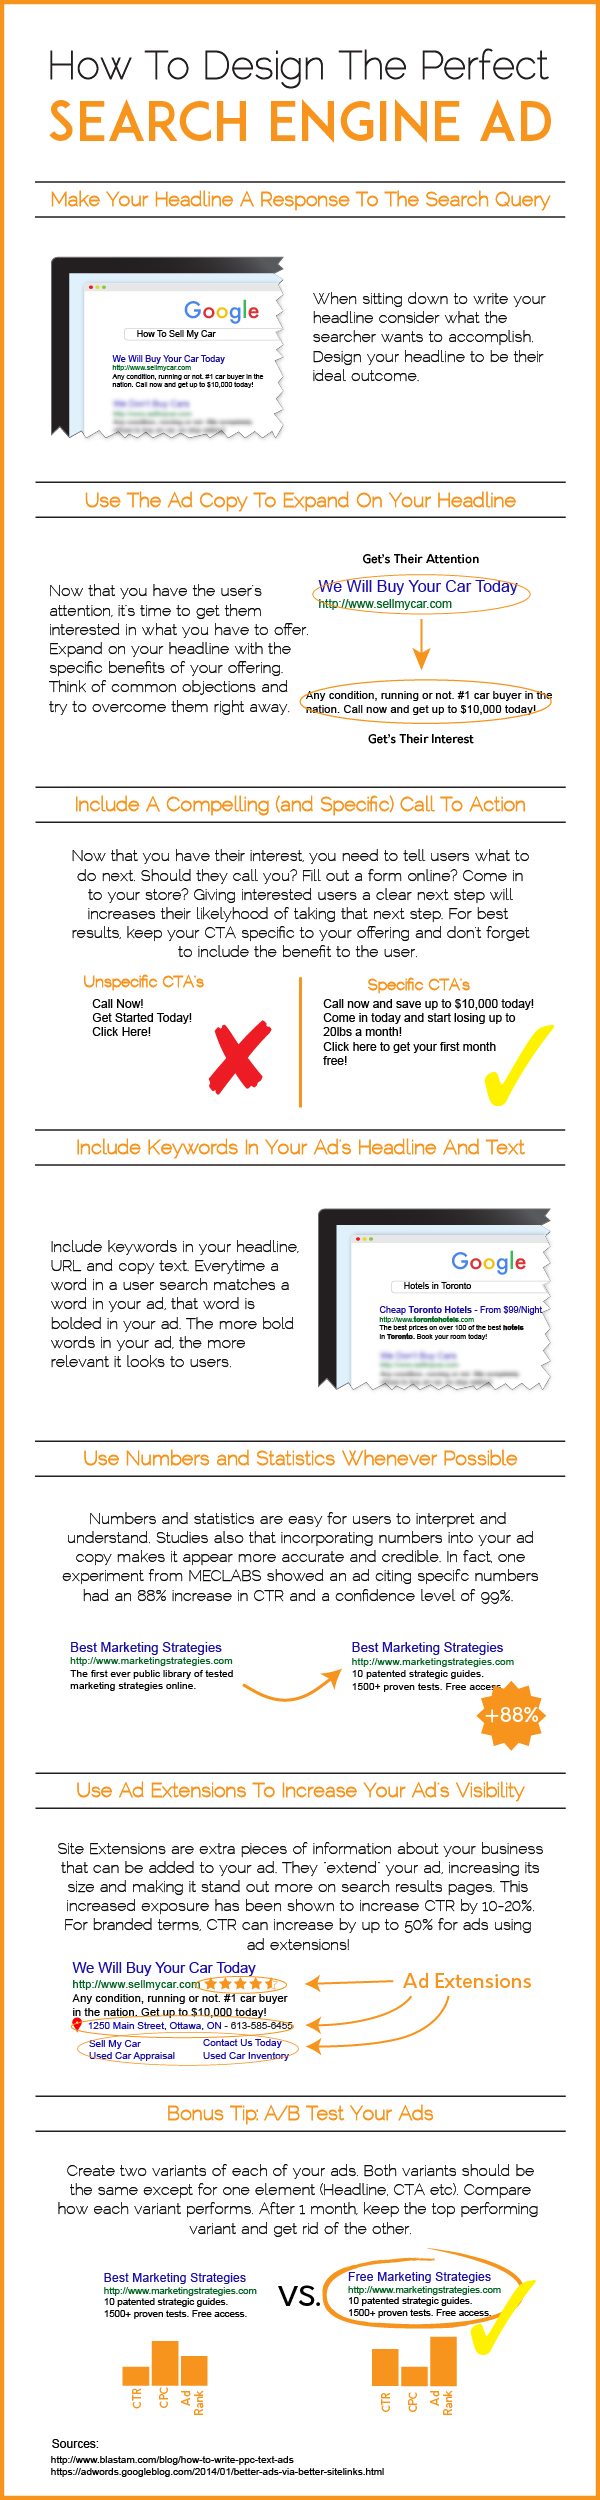 How you can write the best search engine ads